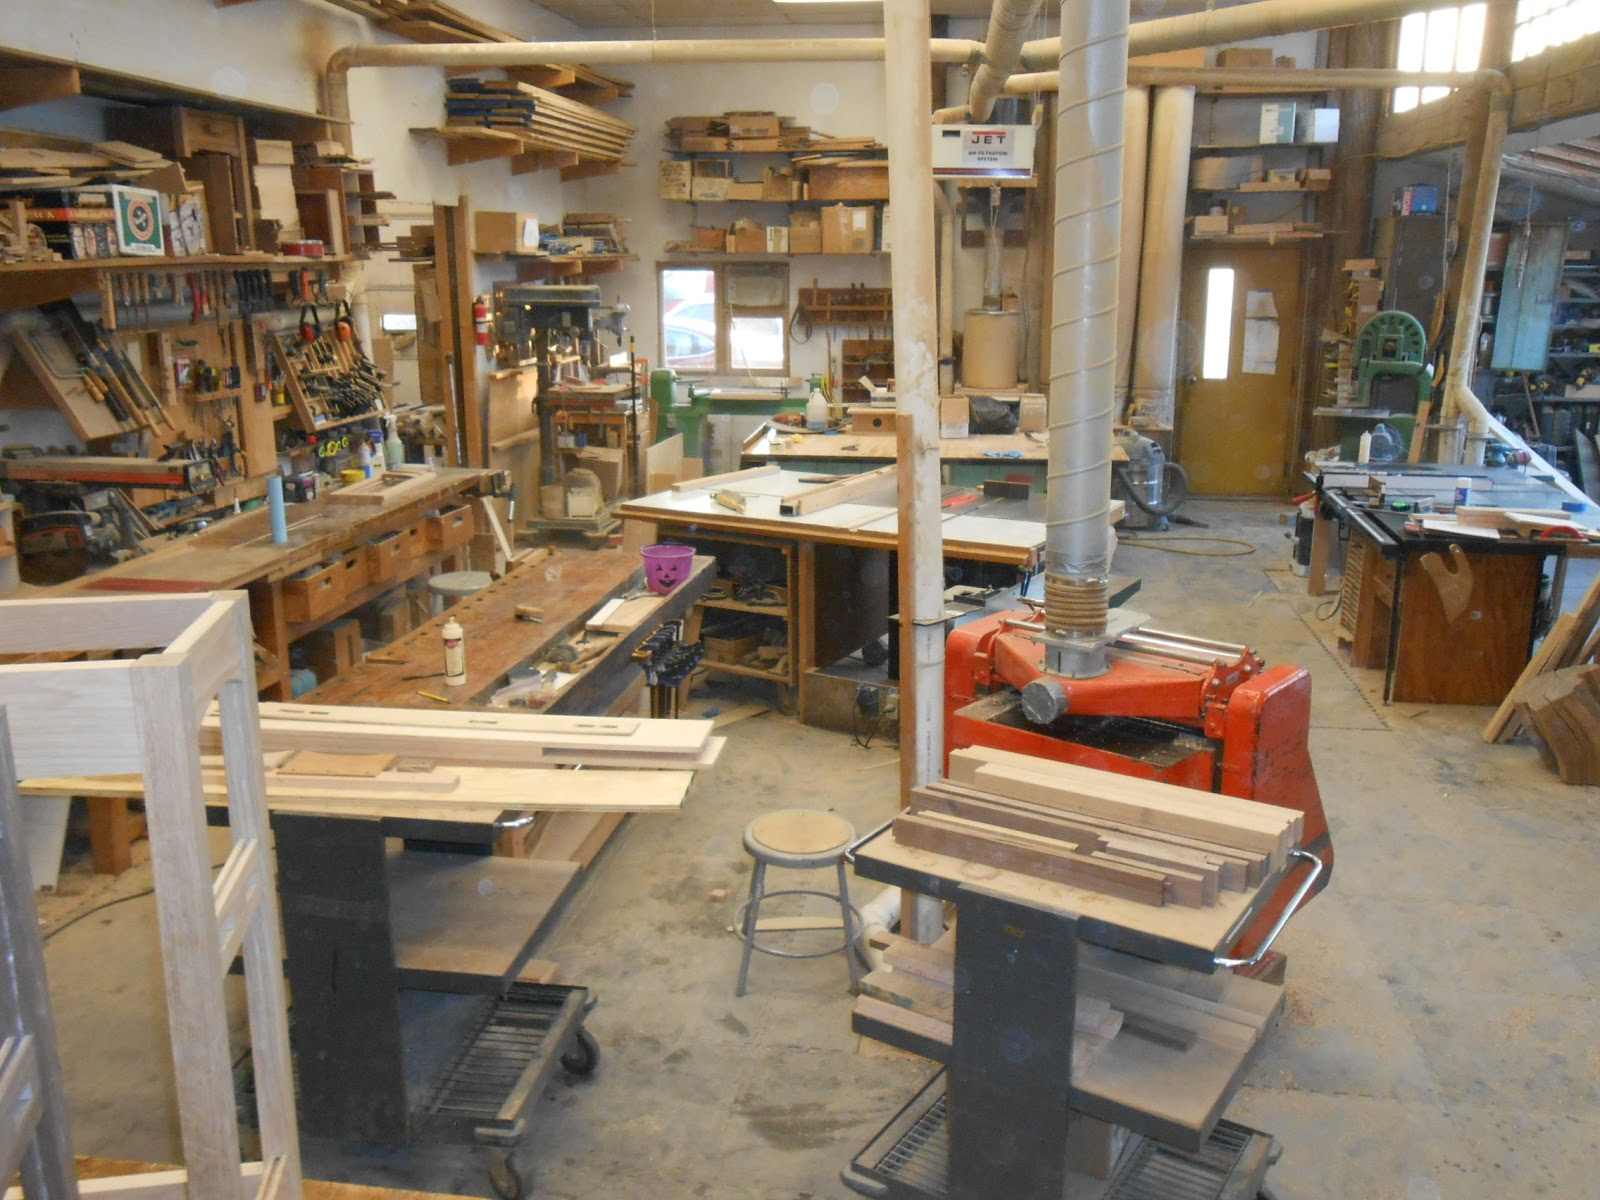 chronicles of a woodworking apprentice: cleaning the shop